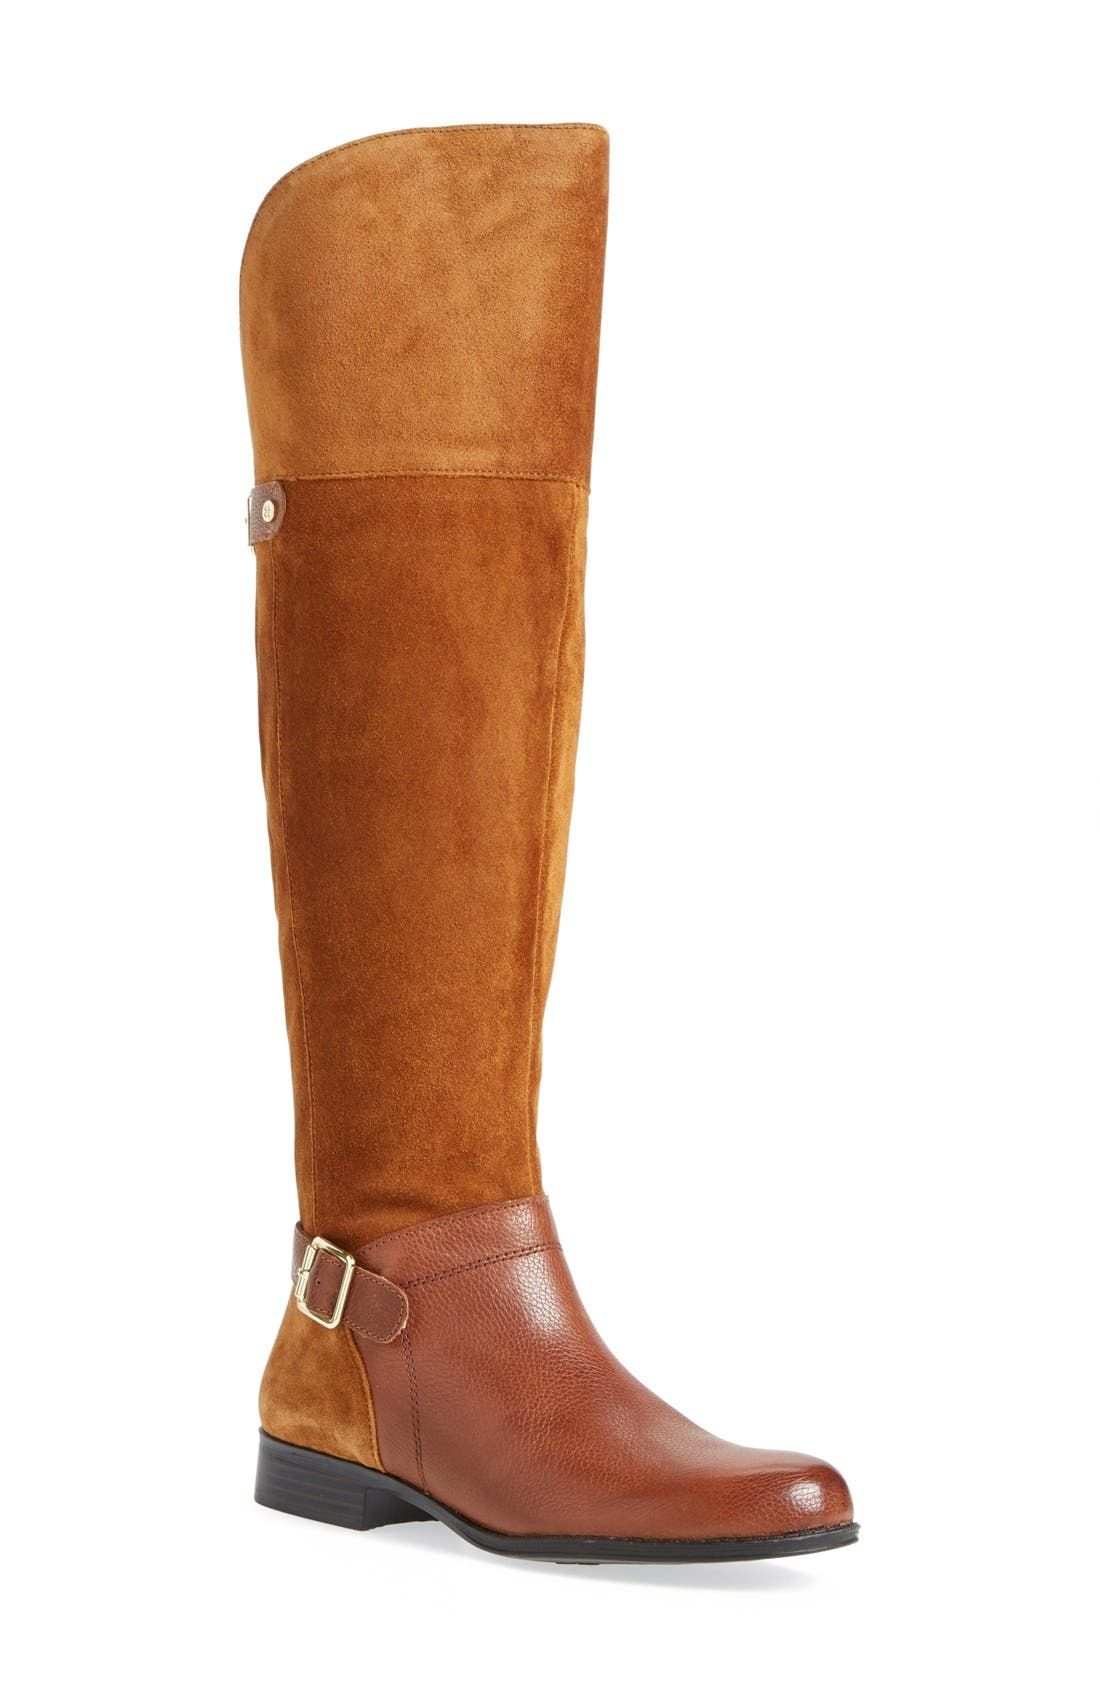 Alternate Image 1 Selected - Naturalizer'July' Over the Knee Boot (Women) (Wide Calf)